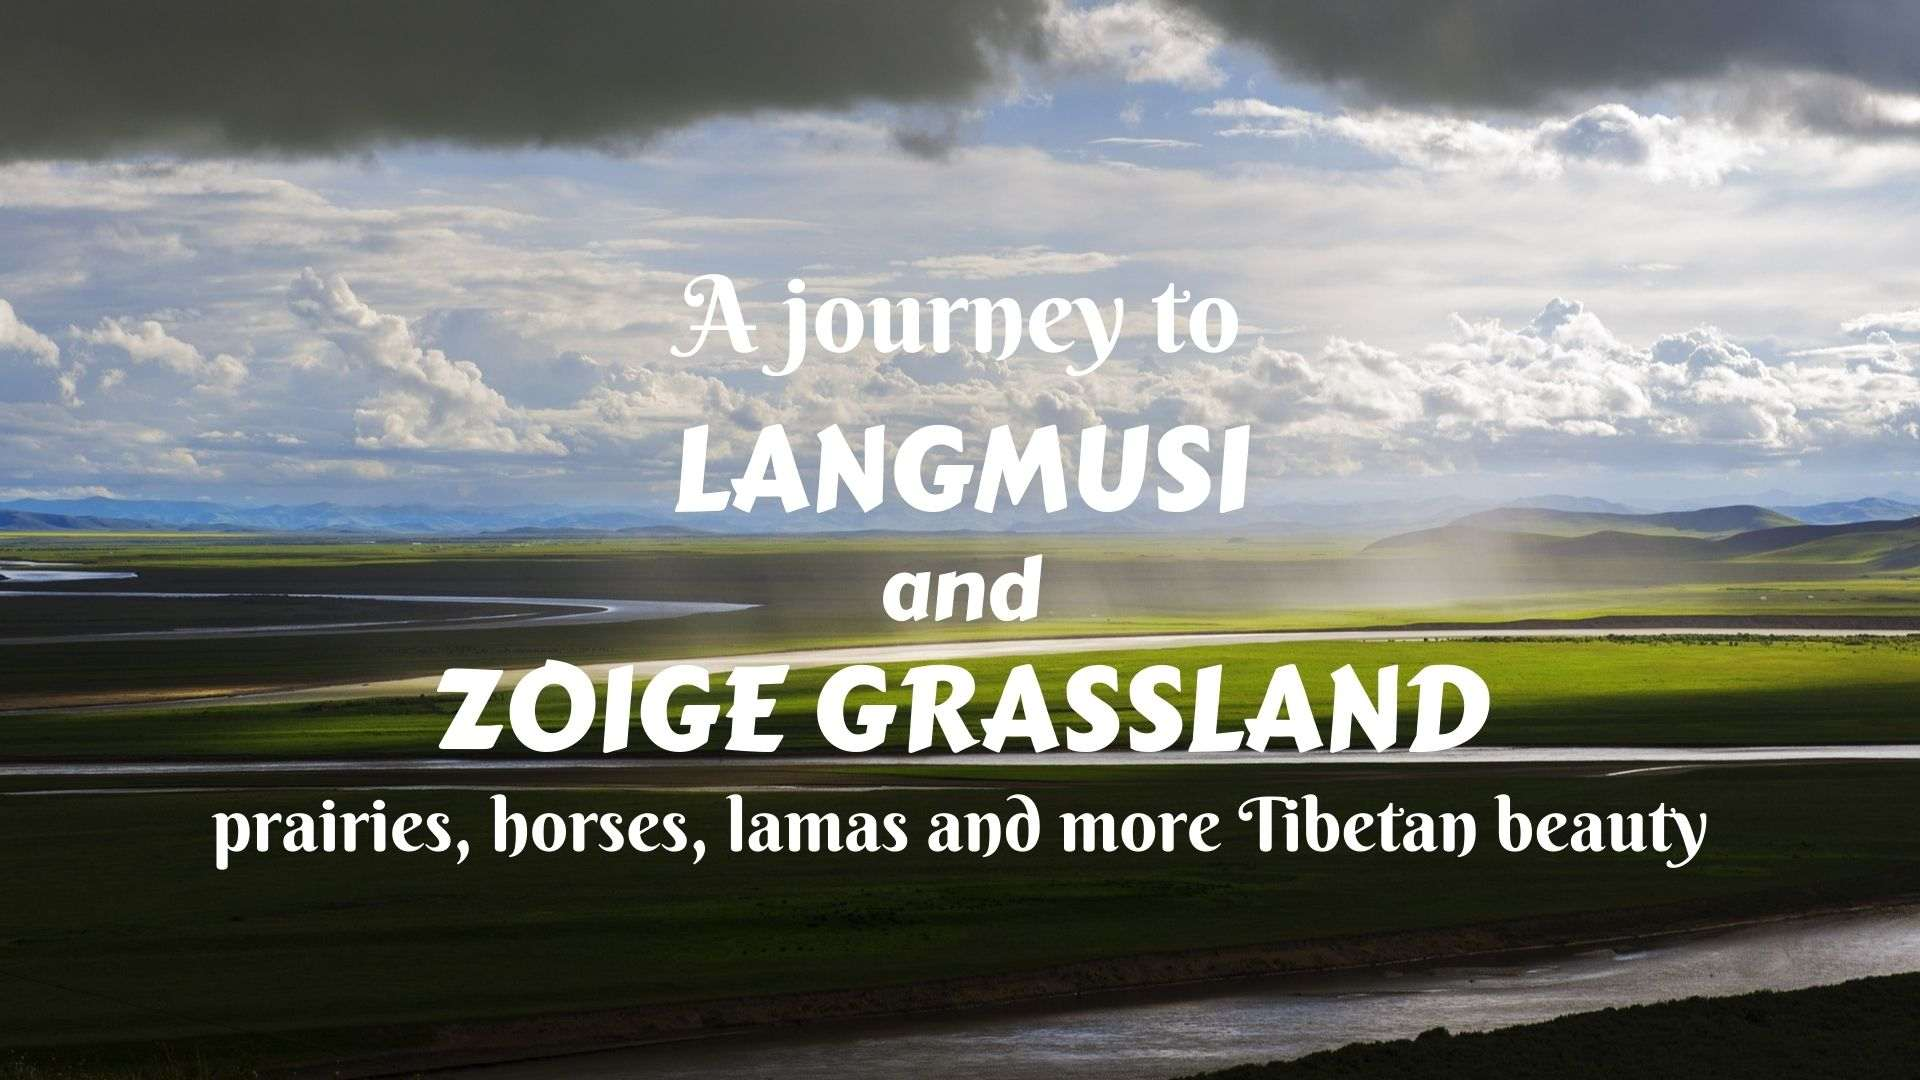 A journey to Langmusi (Taktsang Lhamo) and Zoige Grassland- prairies, horses, lamas, and more Tibetan beauty